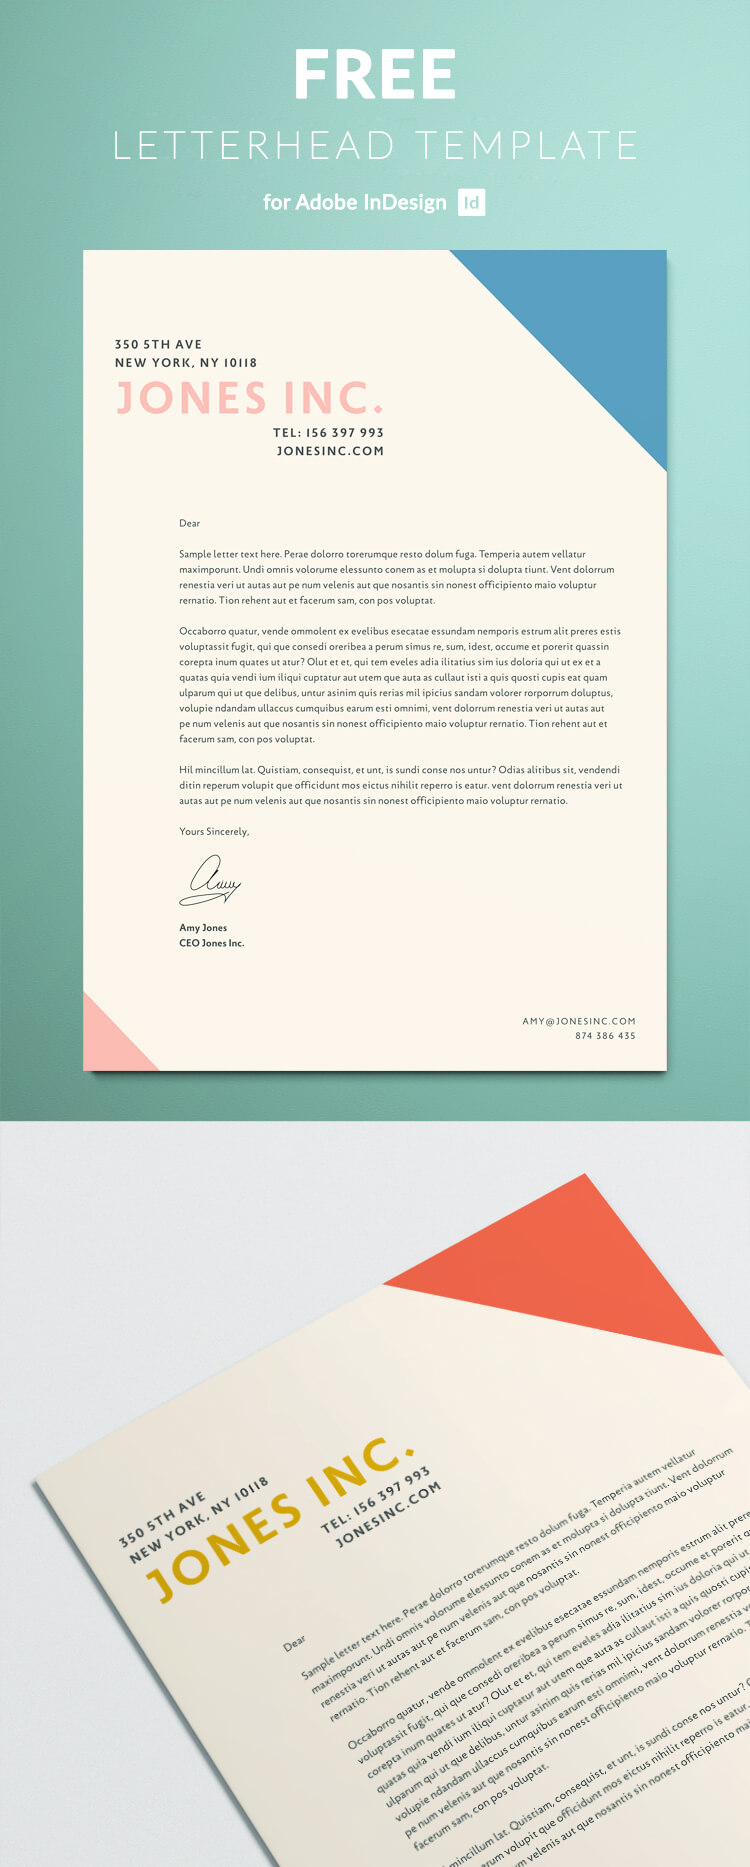 Simple modern letterhead design for a creative business. Download as a free letterhead template for Adobe InDesign.